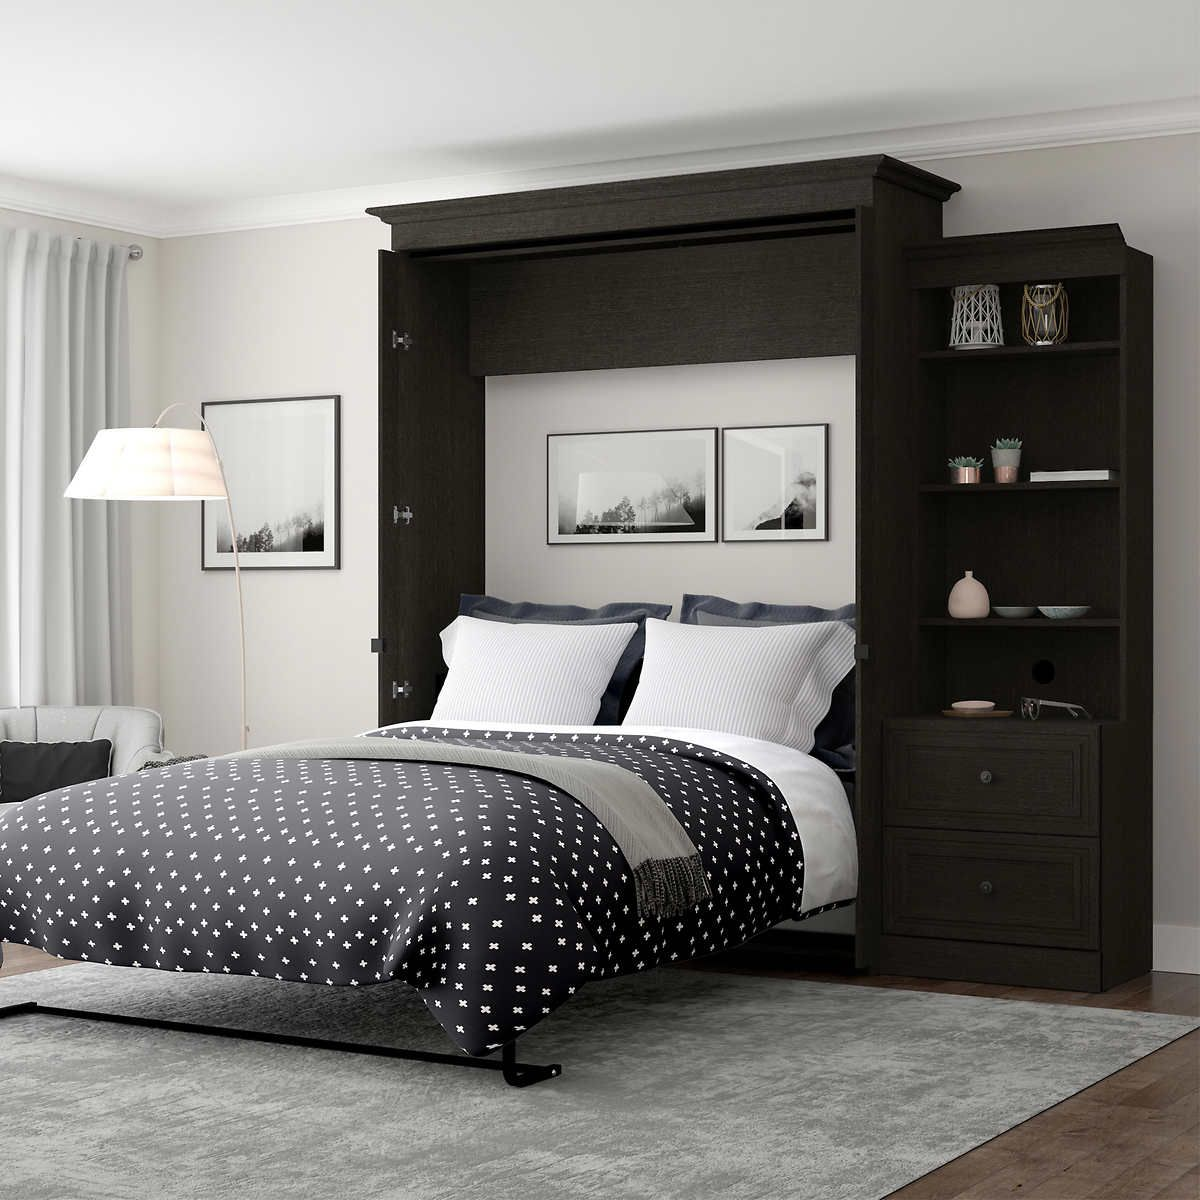 Pin by Tina Micke on For the Home Murphy bed, Wall bed